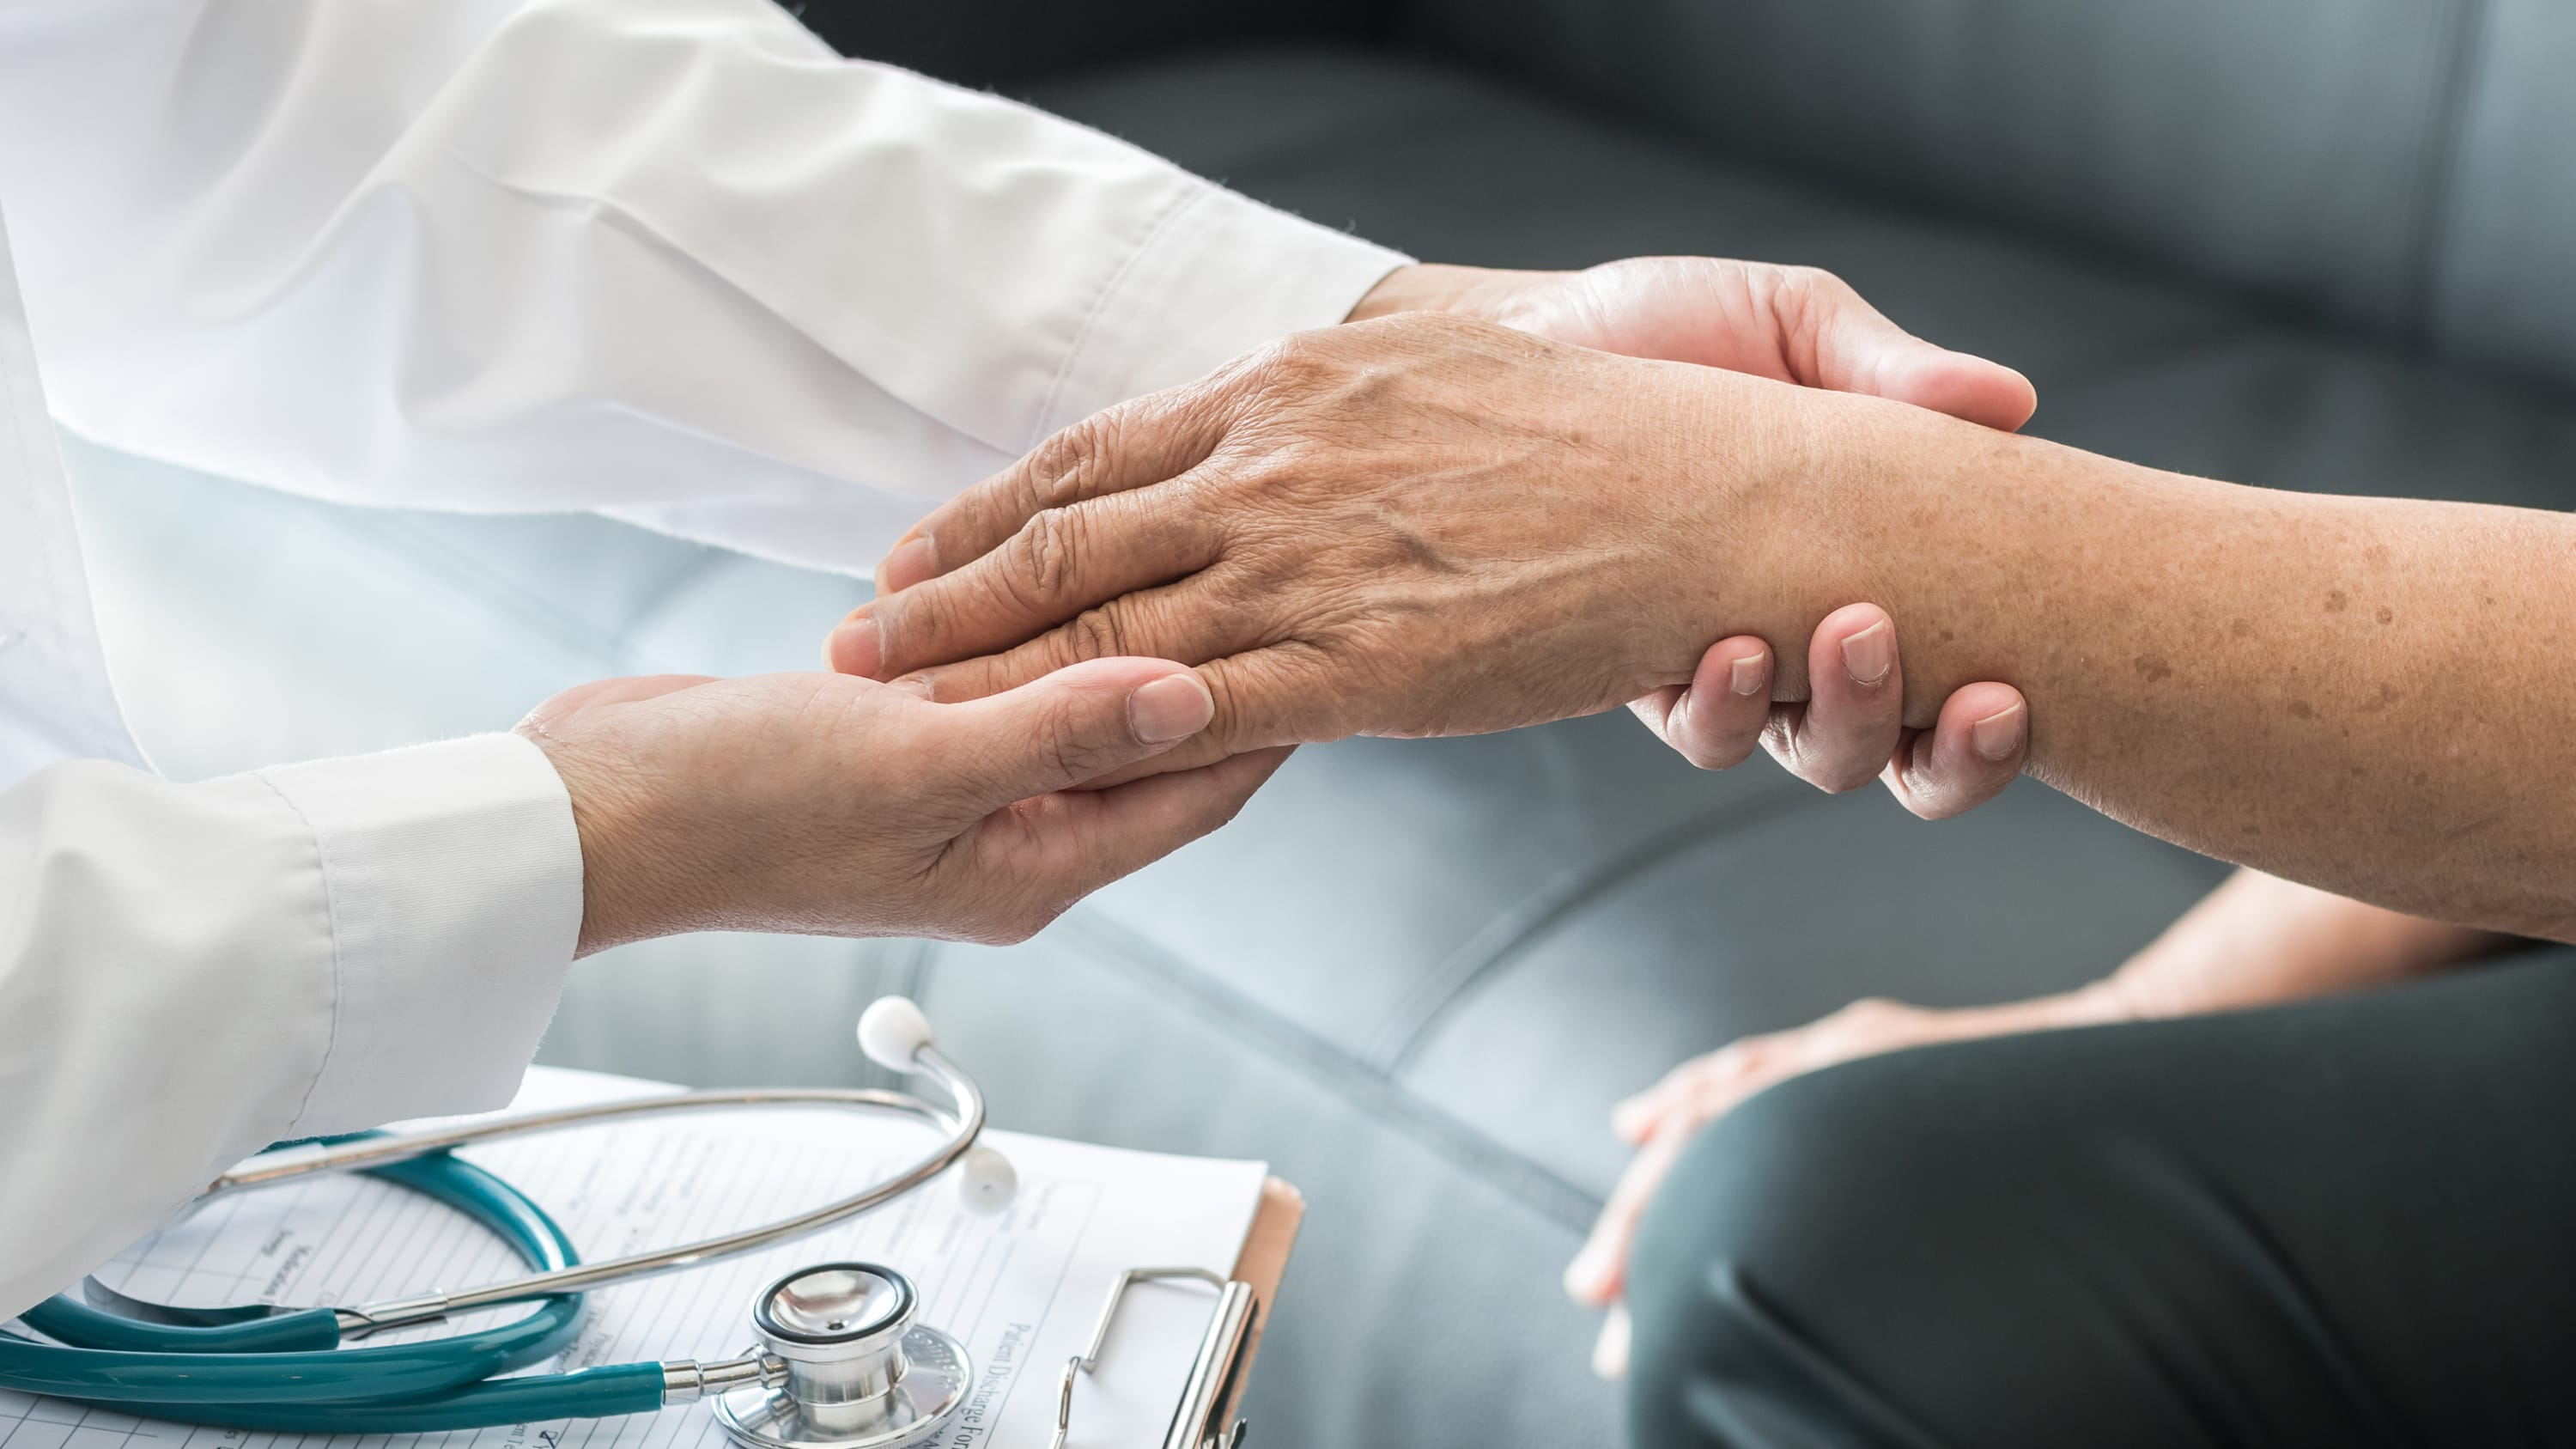 Doctor checking an arm, possibly for vascular malformations